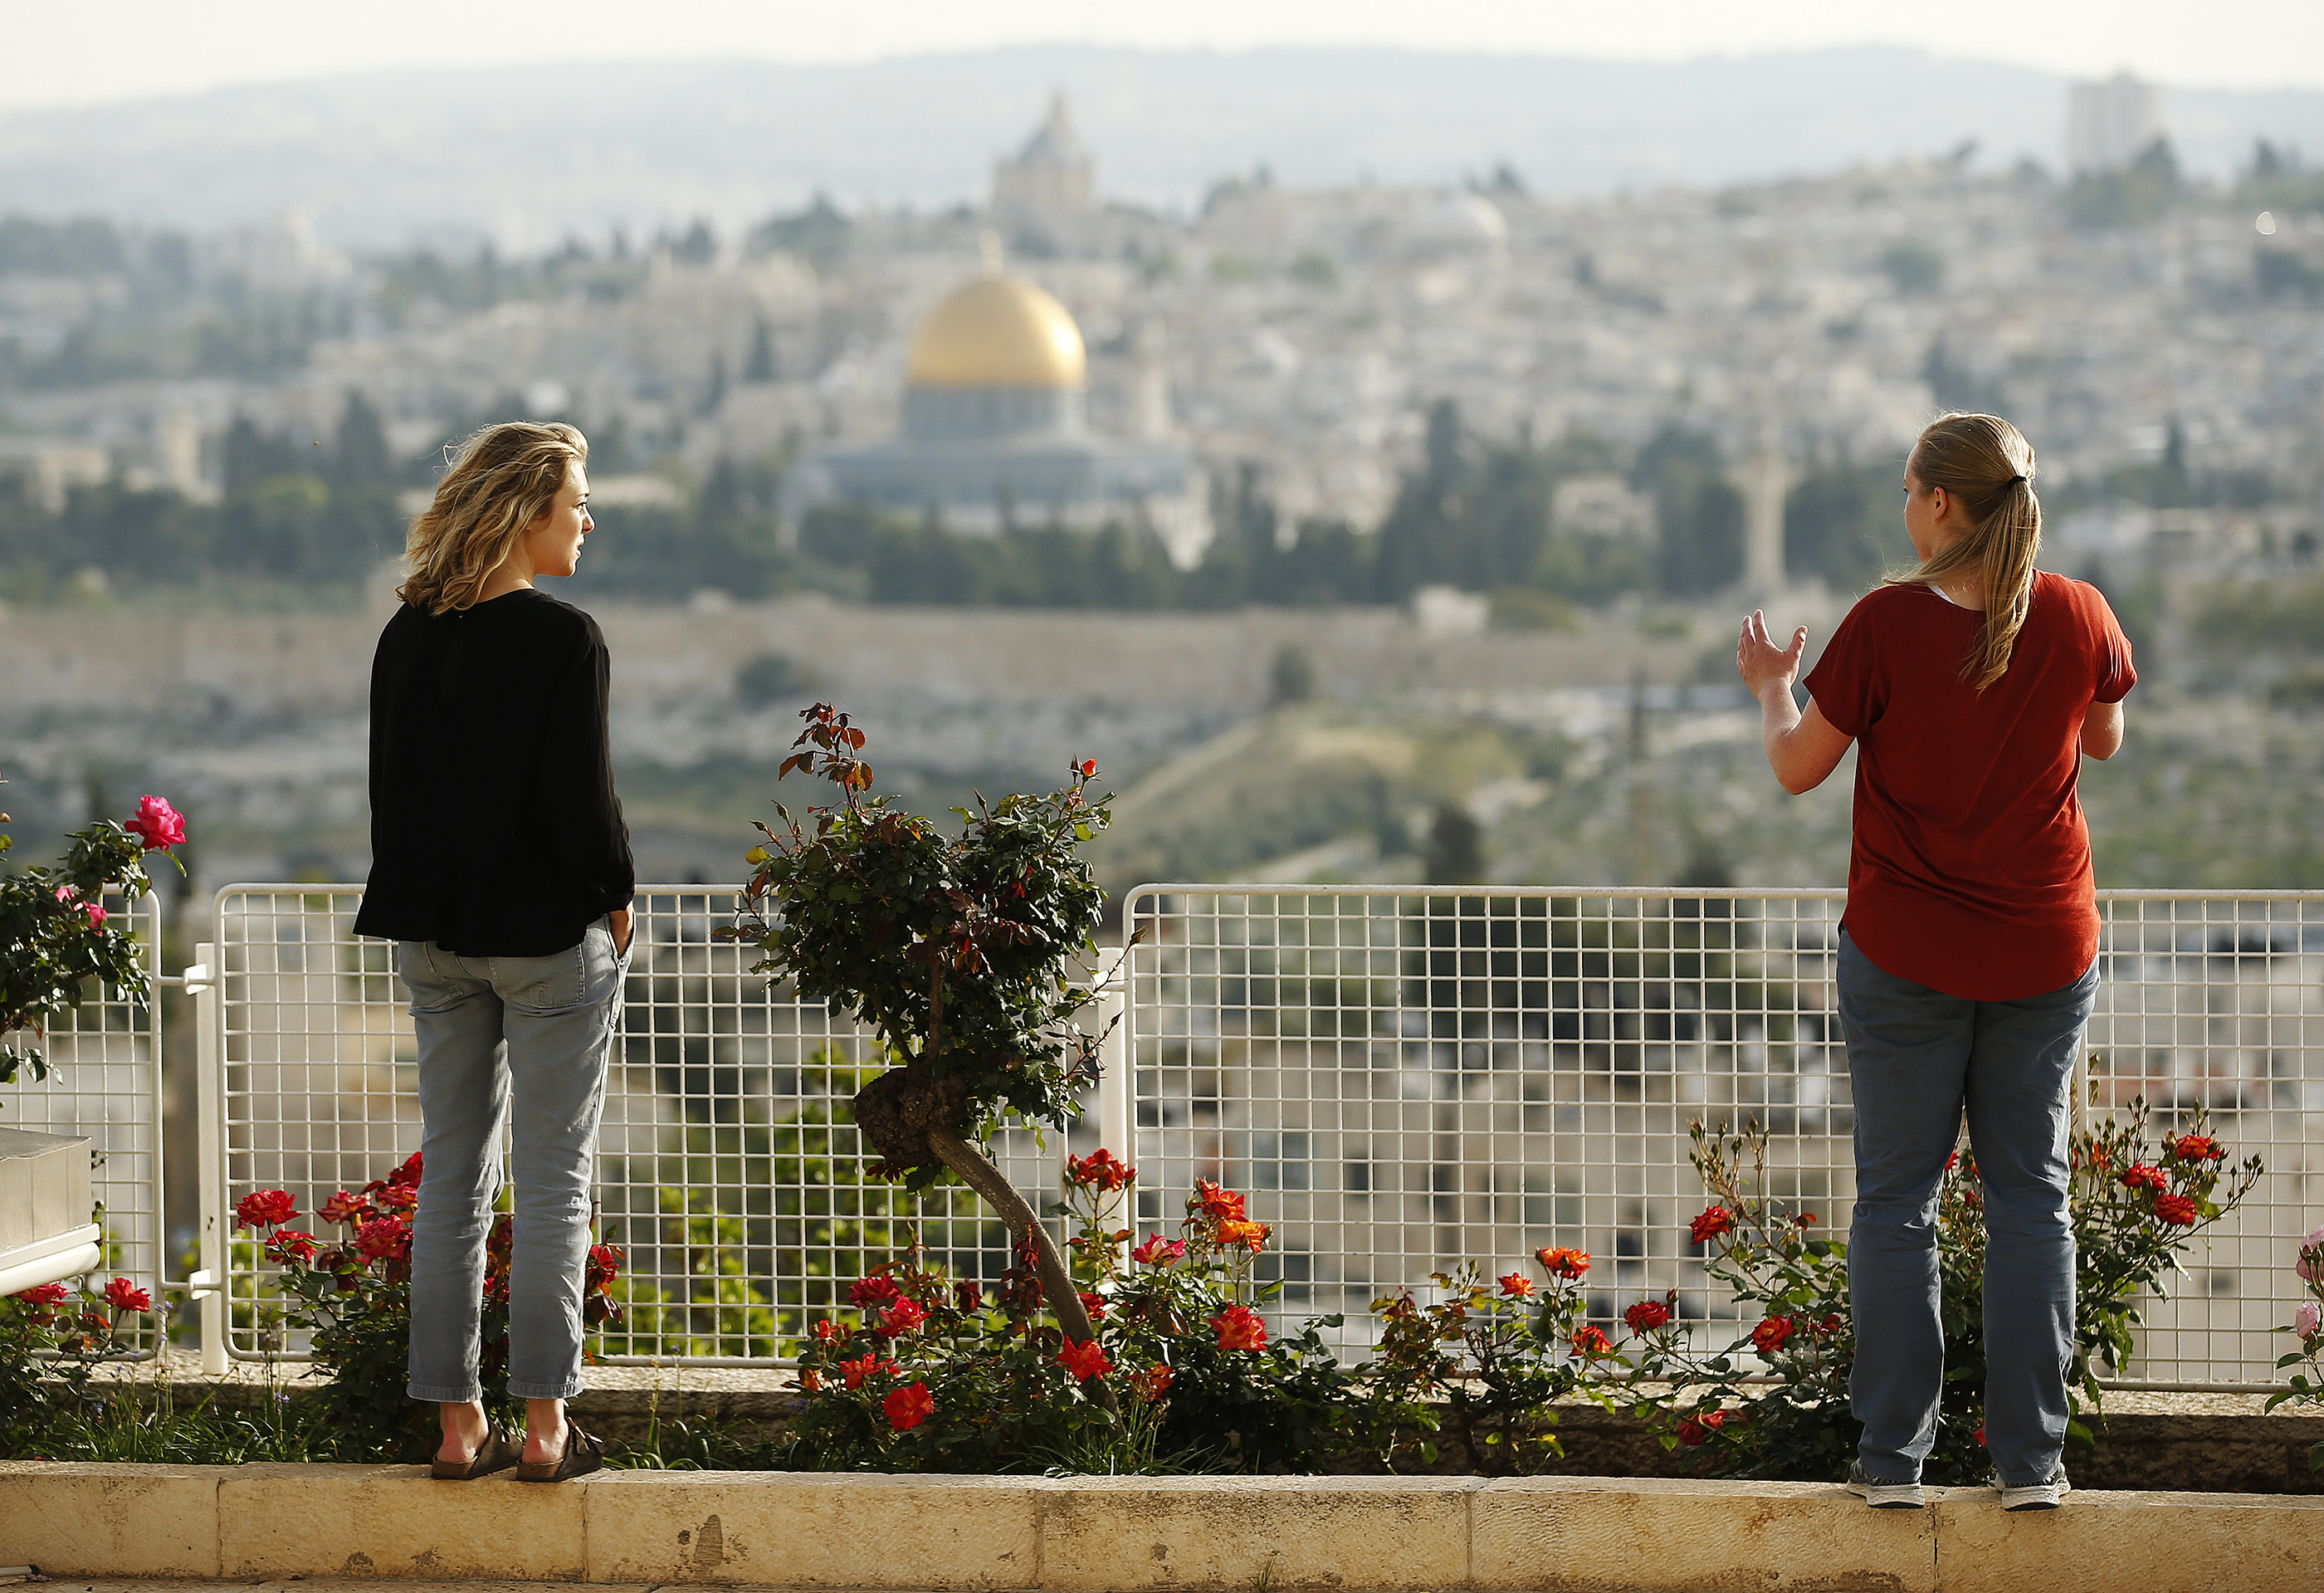 Cassidy Heaton and Chelsea Neubert, students at the BYU Jerusalem Center, look over the view of the Old City in Jerusalem on Friday, April 13, 2018.